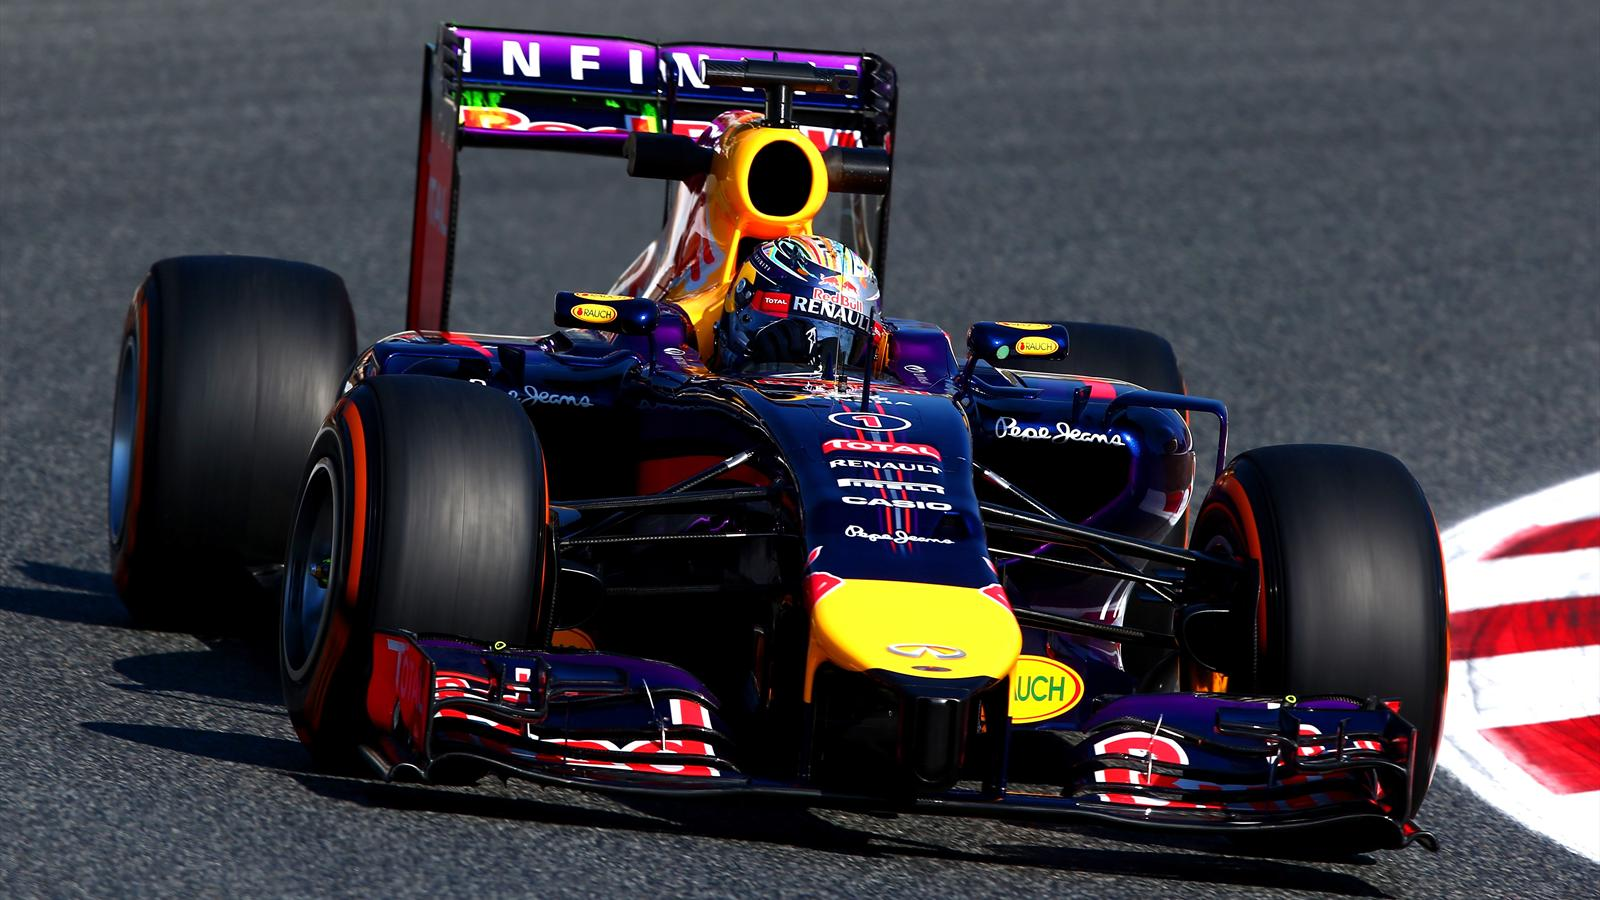 Sebastian Vettel (Red Bull) - Grand Prix of Spain 2014